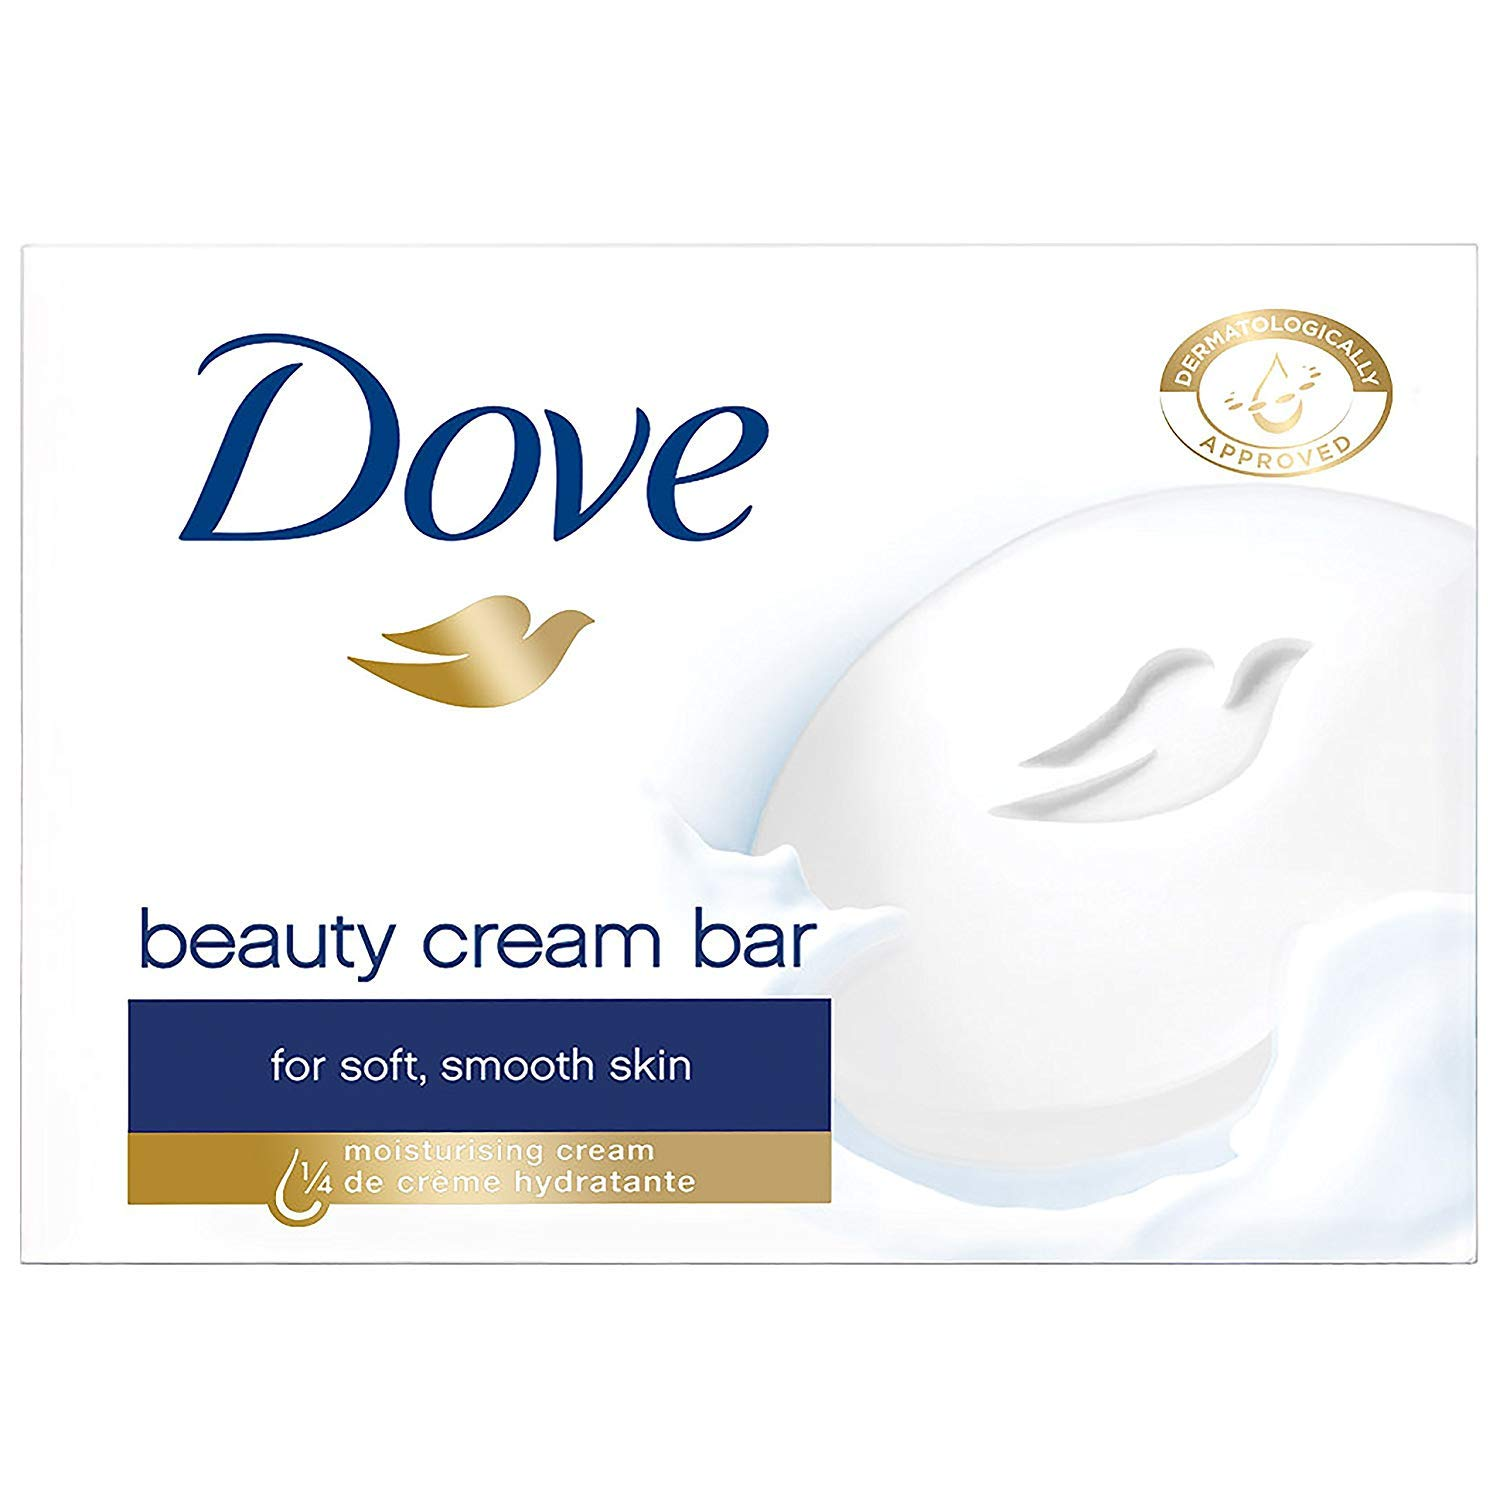 Dove Beauty Cream Bar 100g (12 Bars in Total)